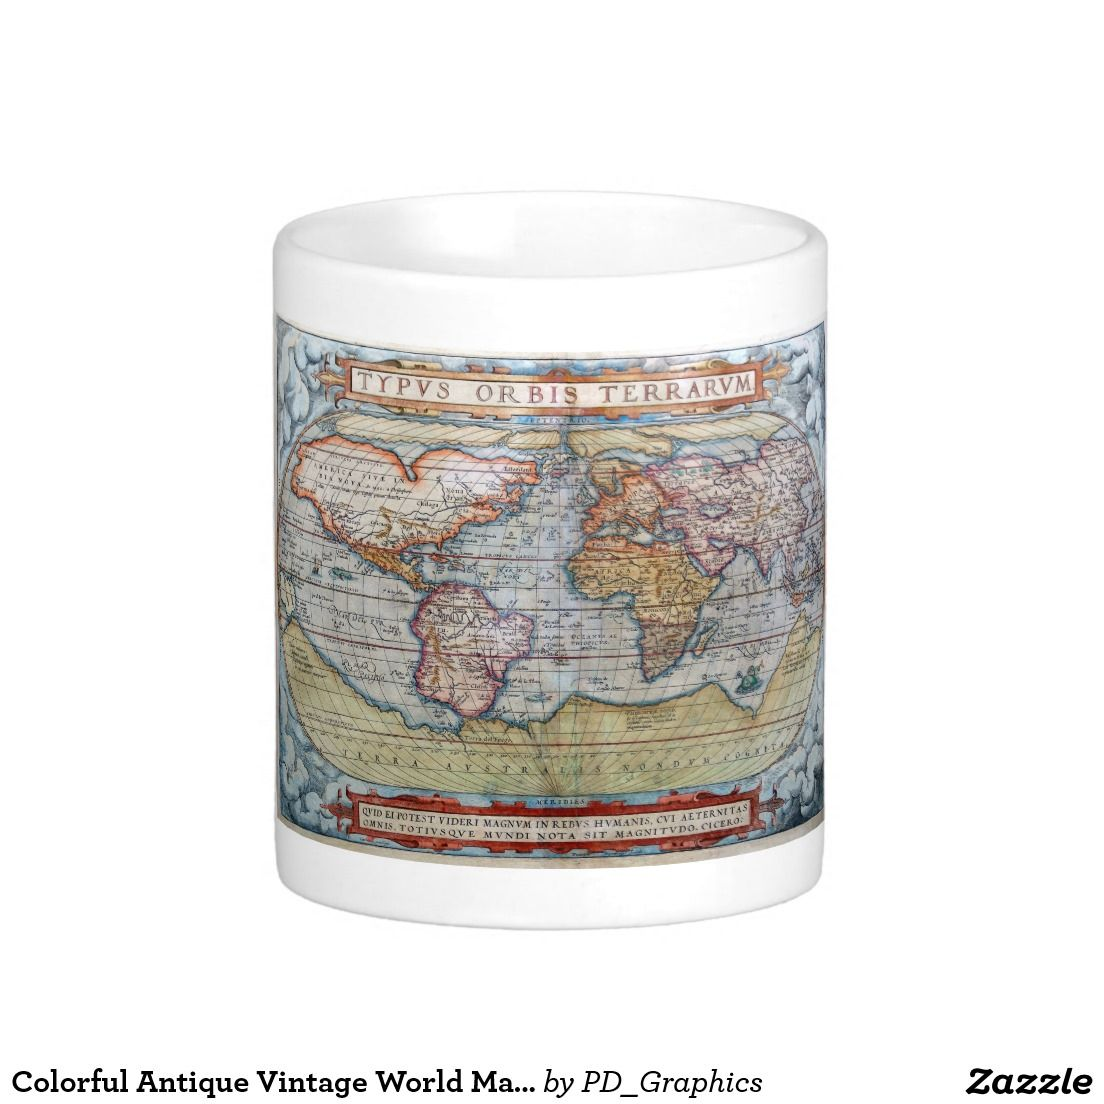 Colorful antique vintage world map ortelius classic white coffee mug colorful antique vintage world map ortelius classic white coffee mug gumiabroncs Image collections